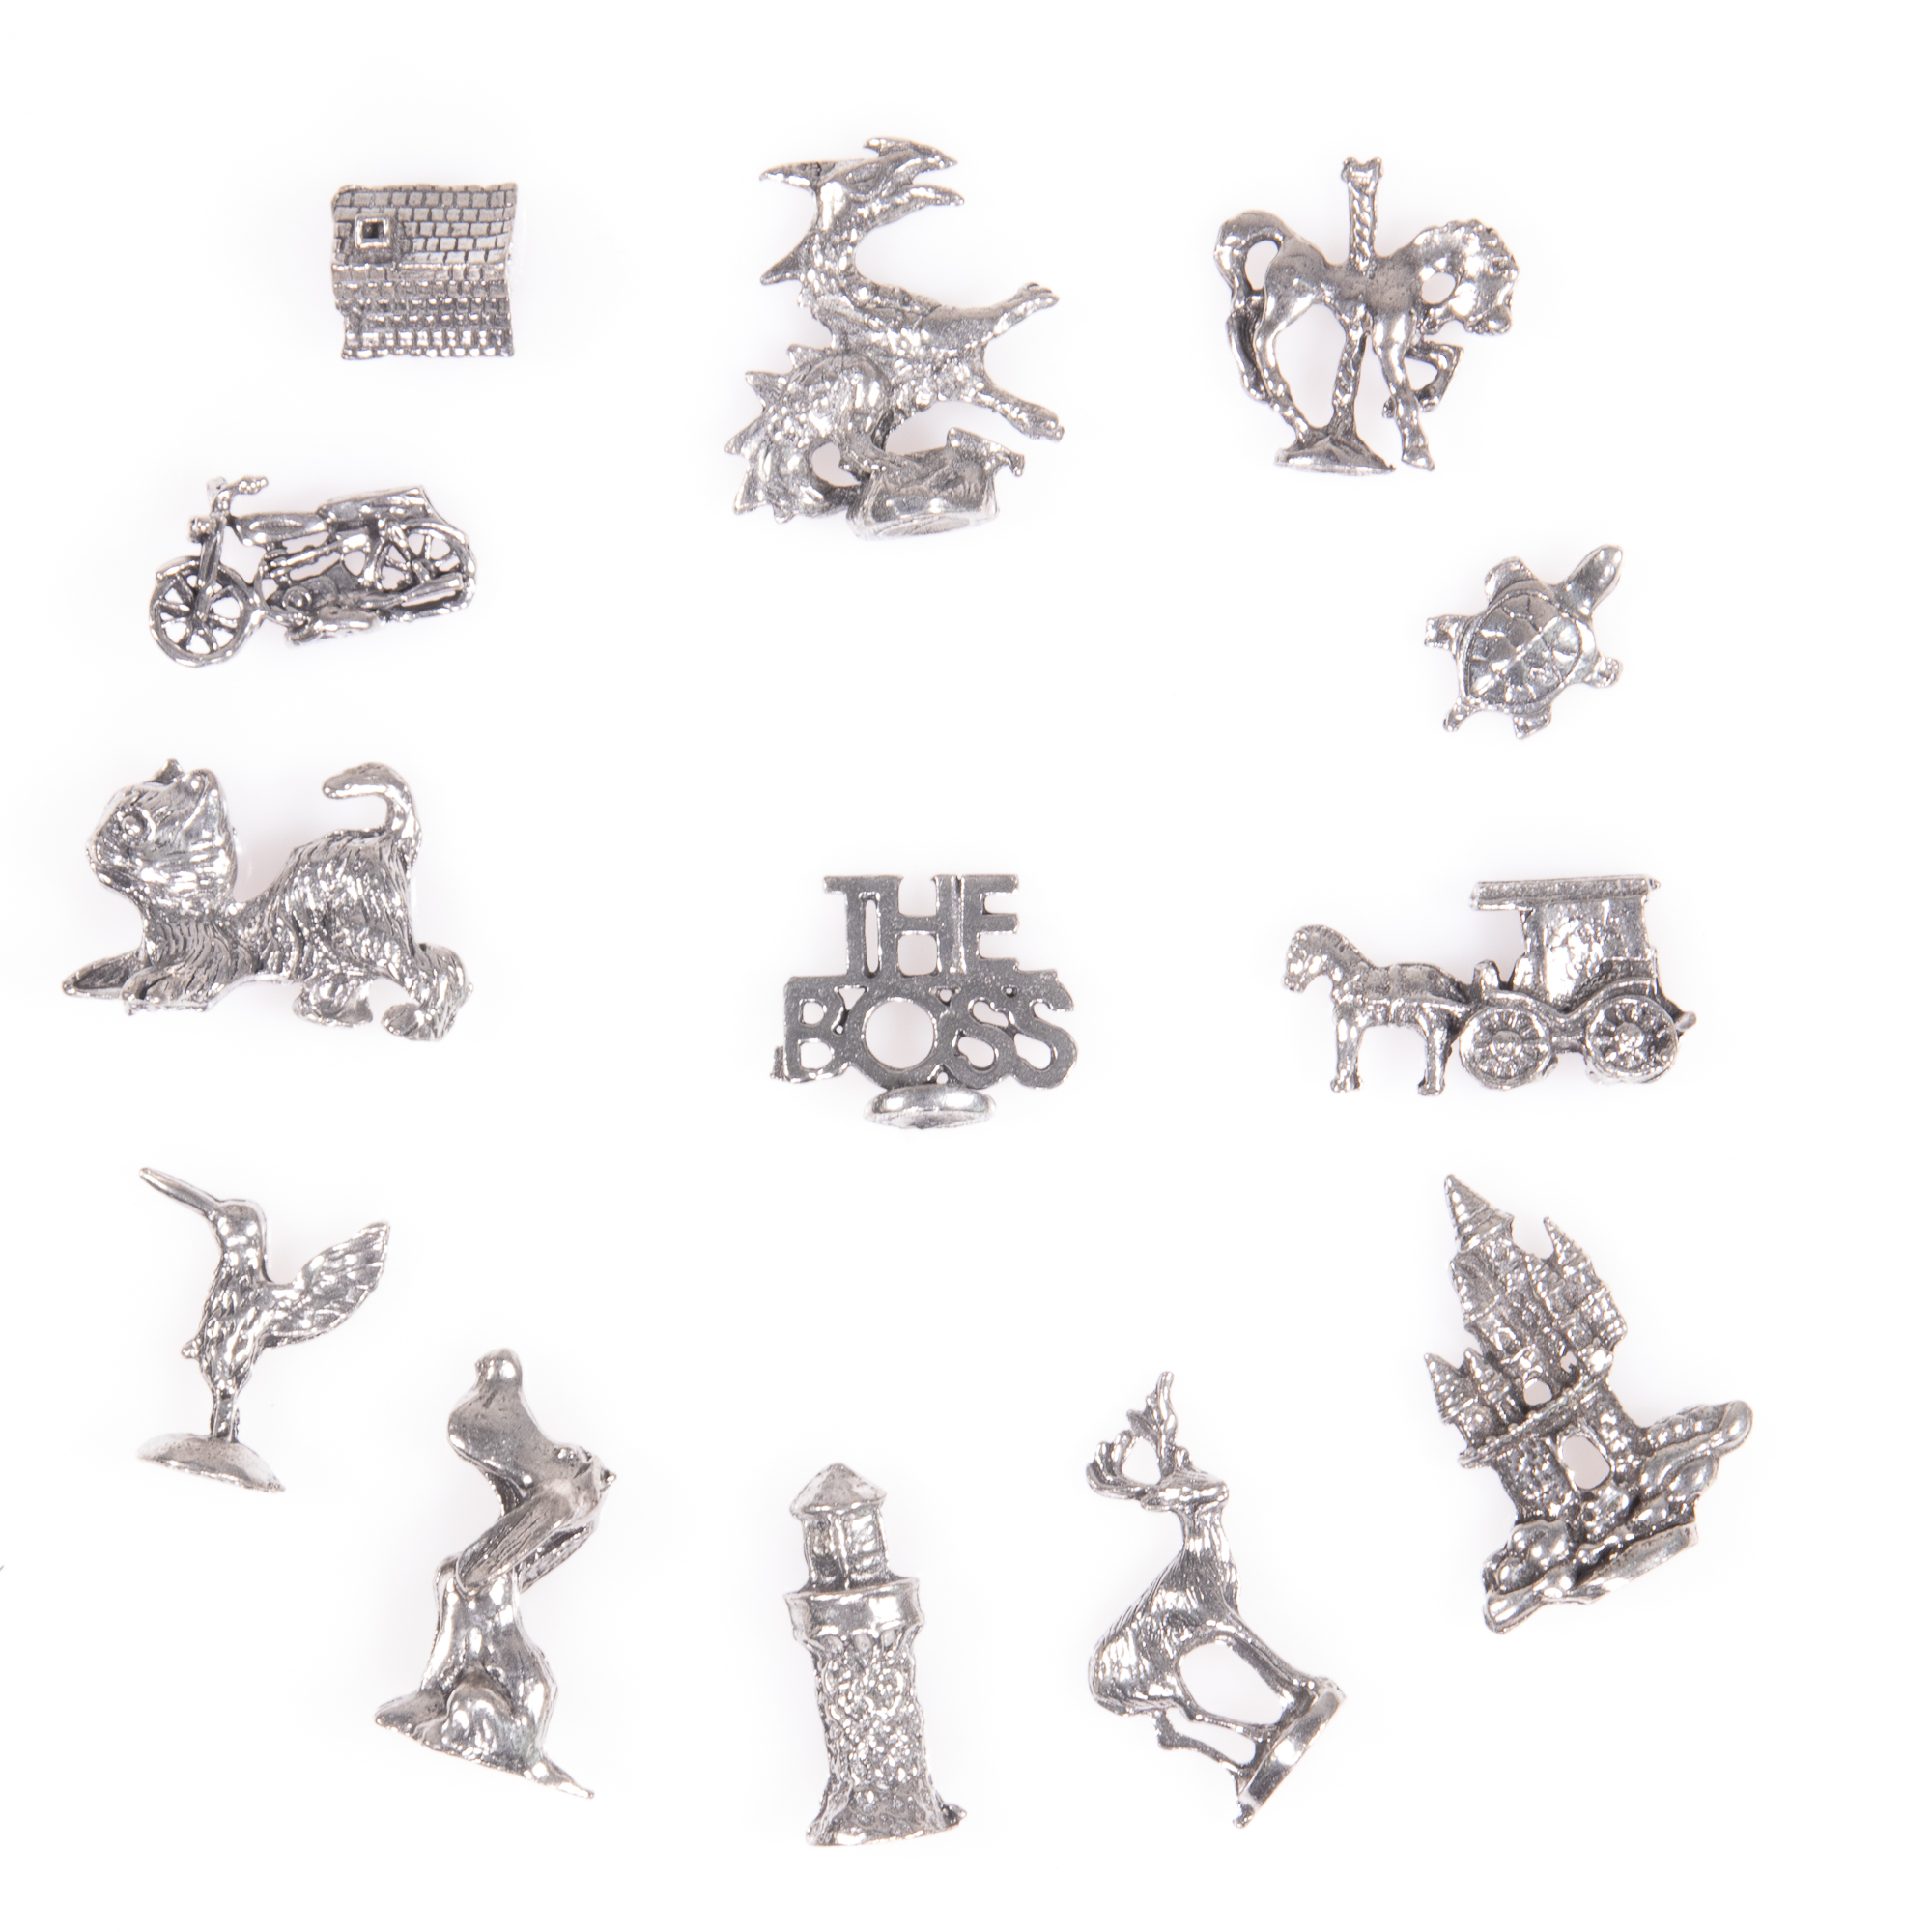 Selection of 13x Silver Novelty Charms - Image 2 of 6